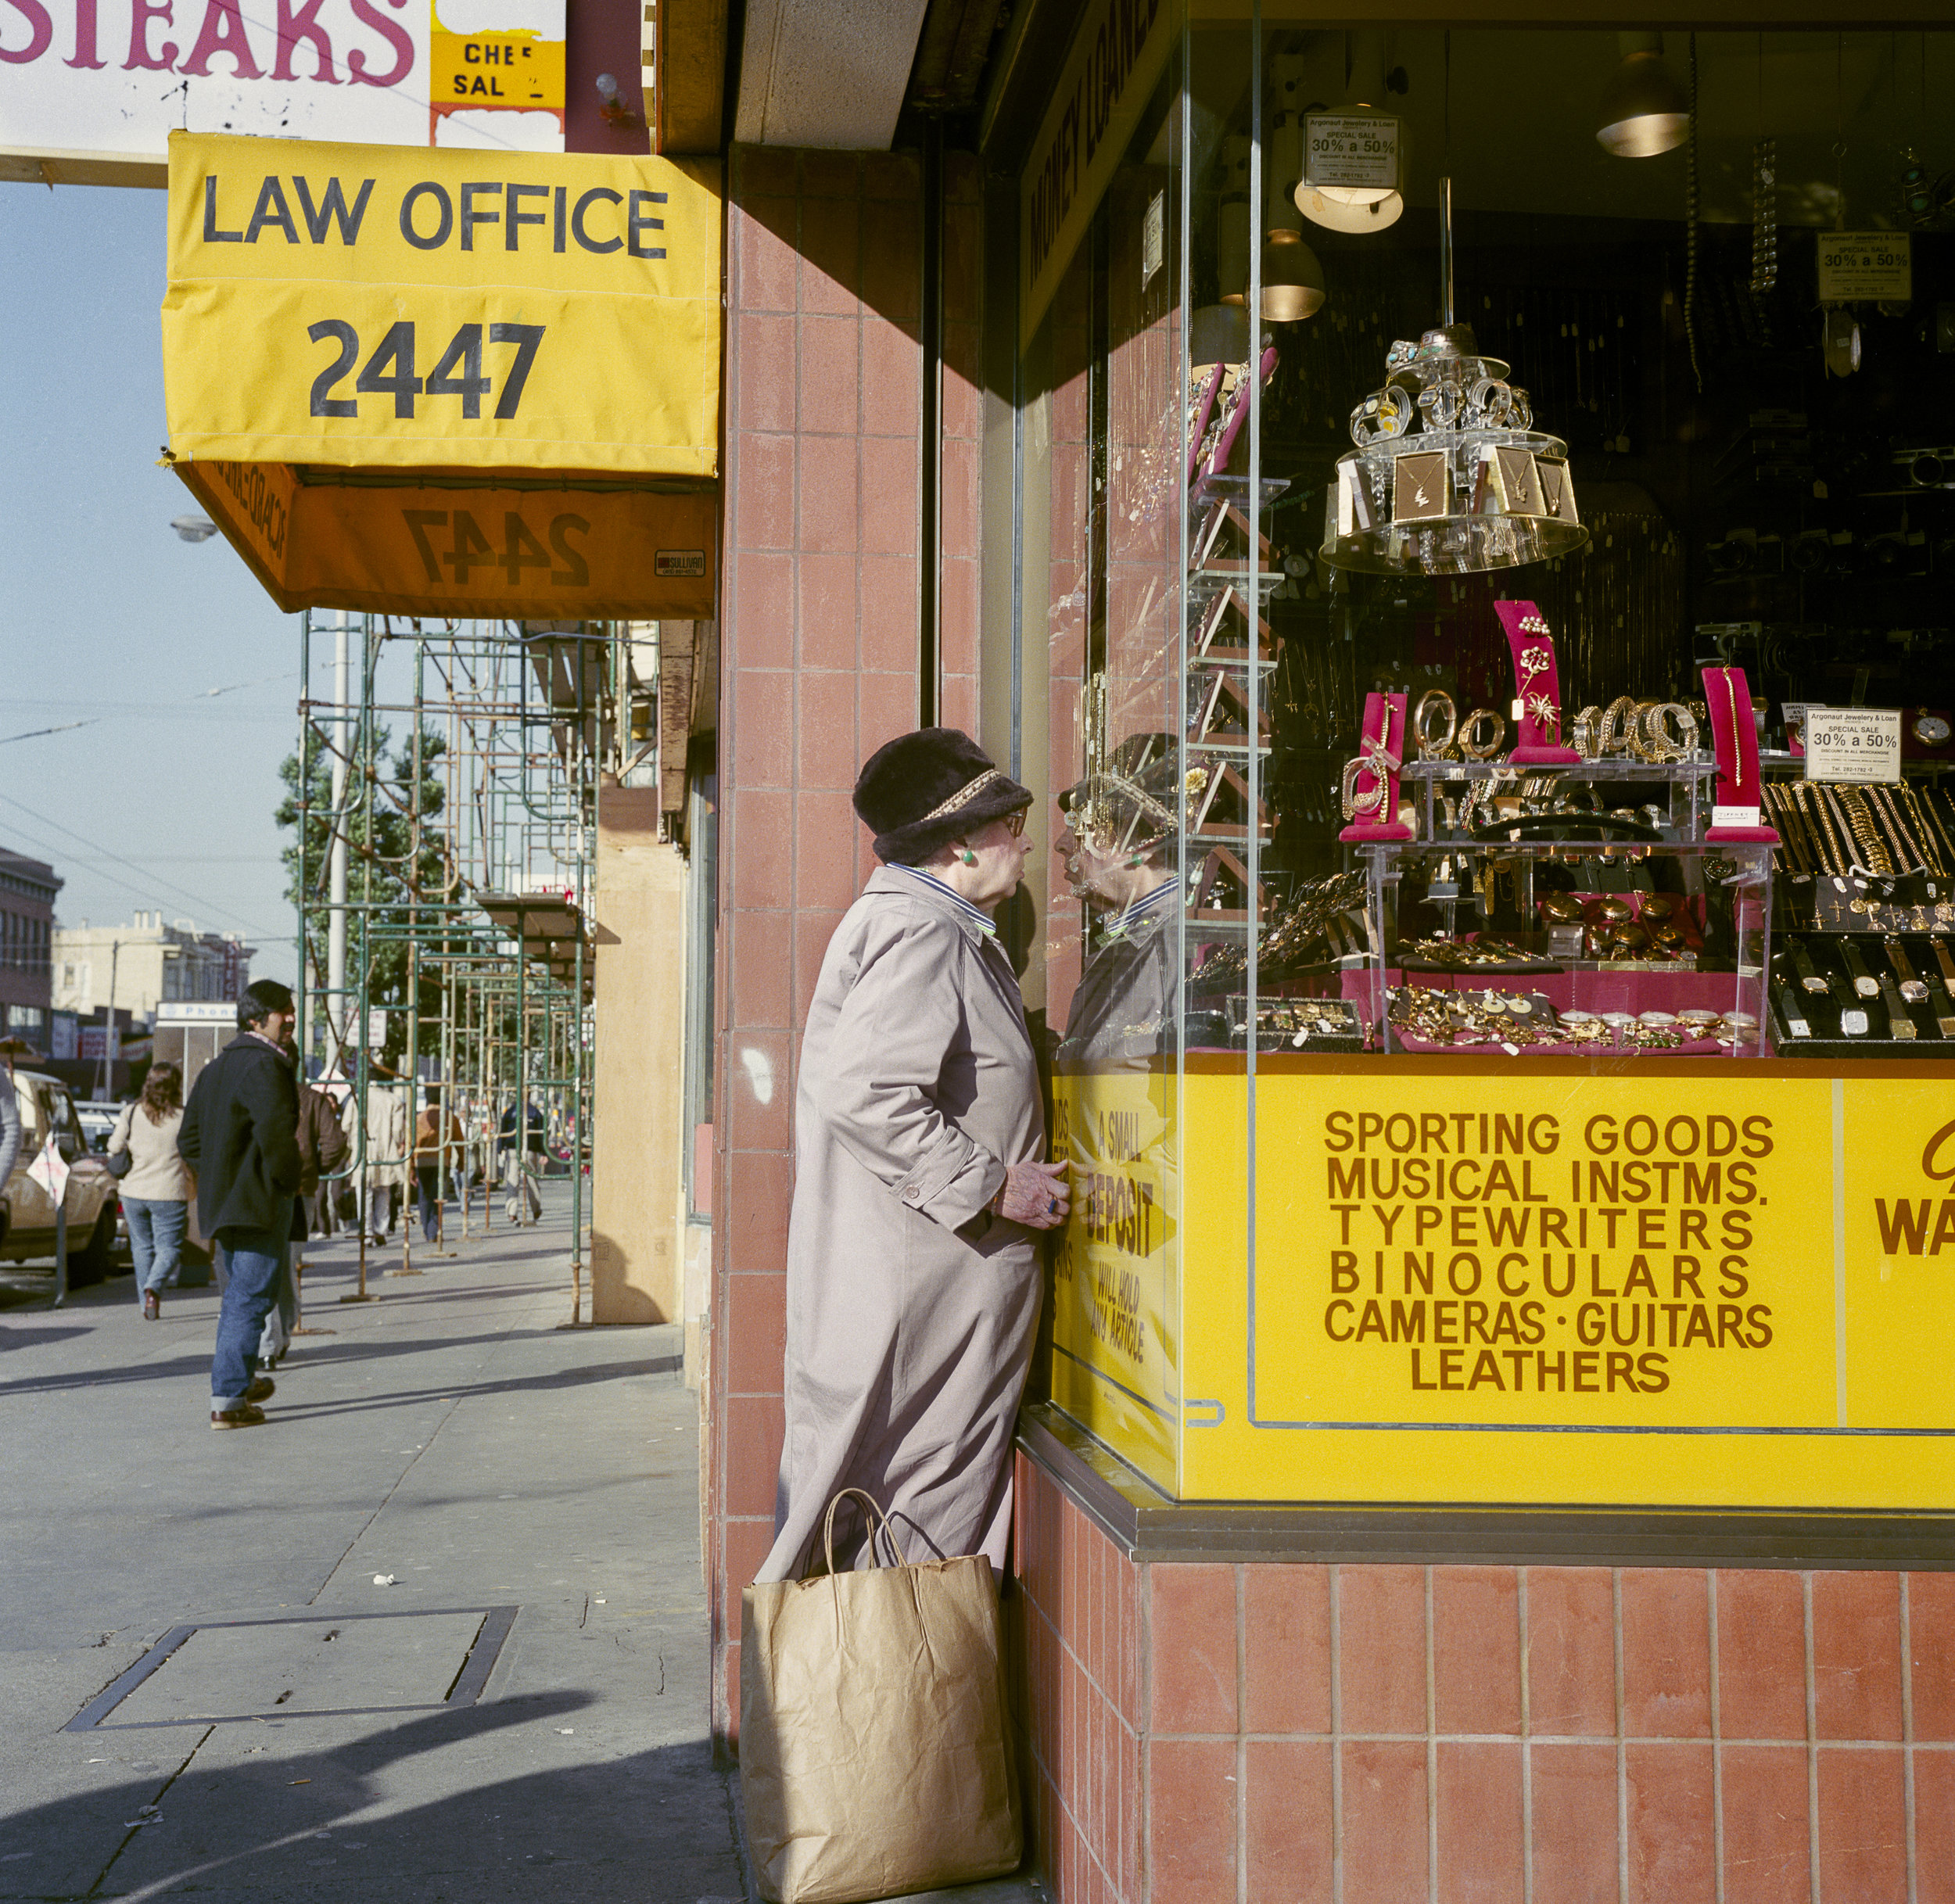 JANET DELANEY  Pawnshop, Mission Street,  1984 from  Public Matters  Archival Pigment Print, 2018  Available in 3 sizes 9 x 9 inches, edition of 7 + 2AP 15 x 15 inches, edition of 3 + 2AP 22 x 22 inches, edition of 2 + 1AP